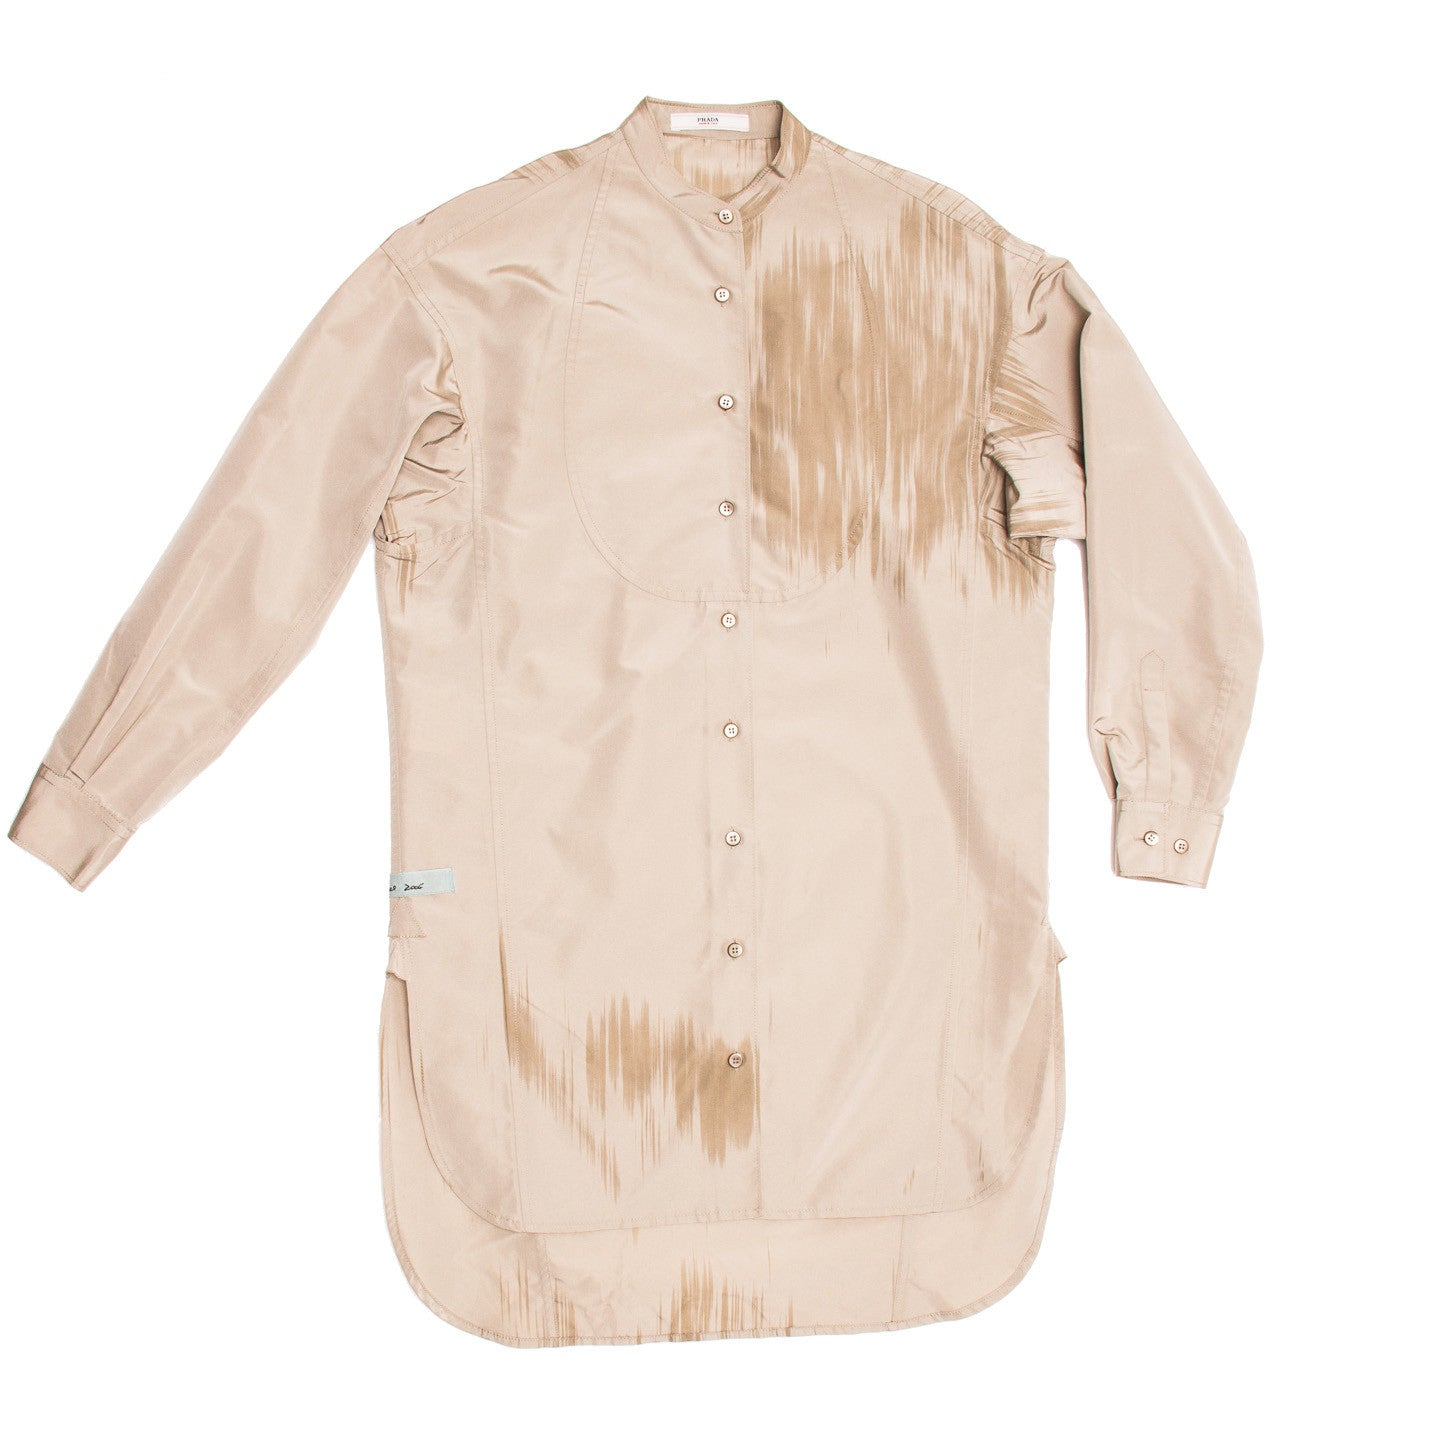 Find an authentic preowned Prada Taupe & Paint Brush Detail Tunic size 46 (Italian) at BunnyJack, where up to 50% of each sale price is donated to charity.